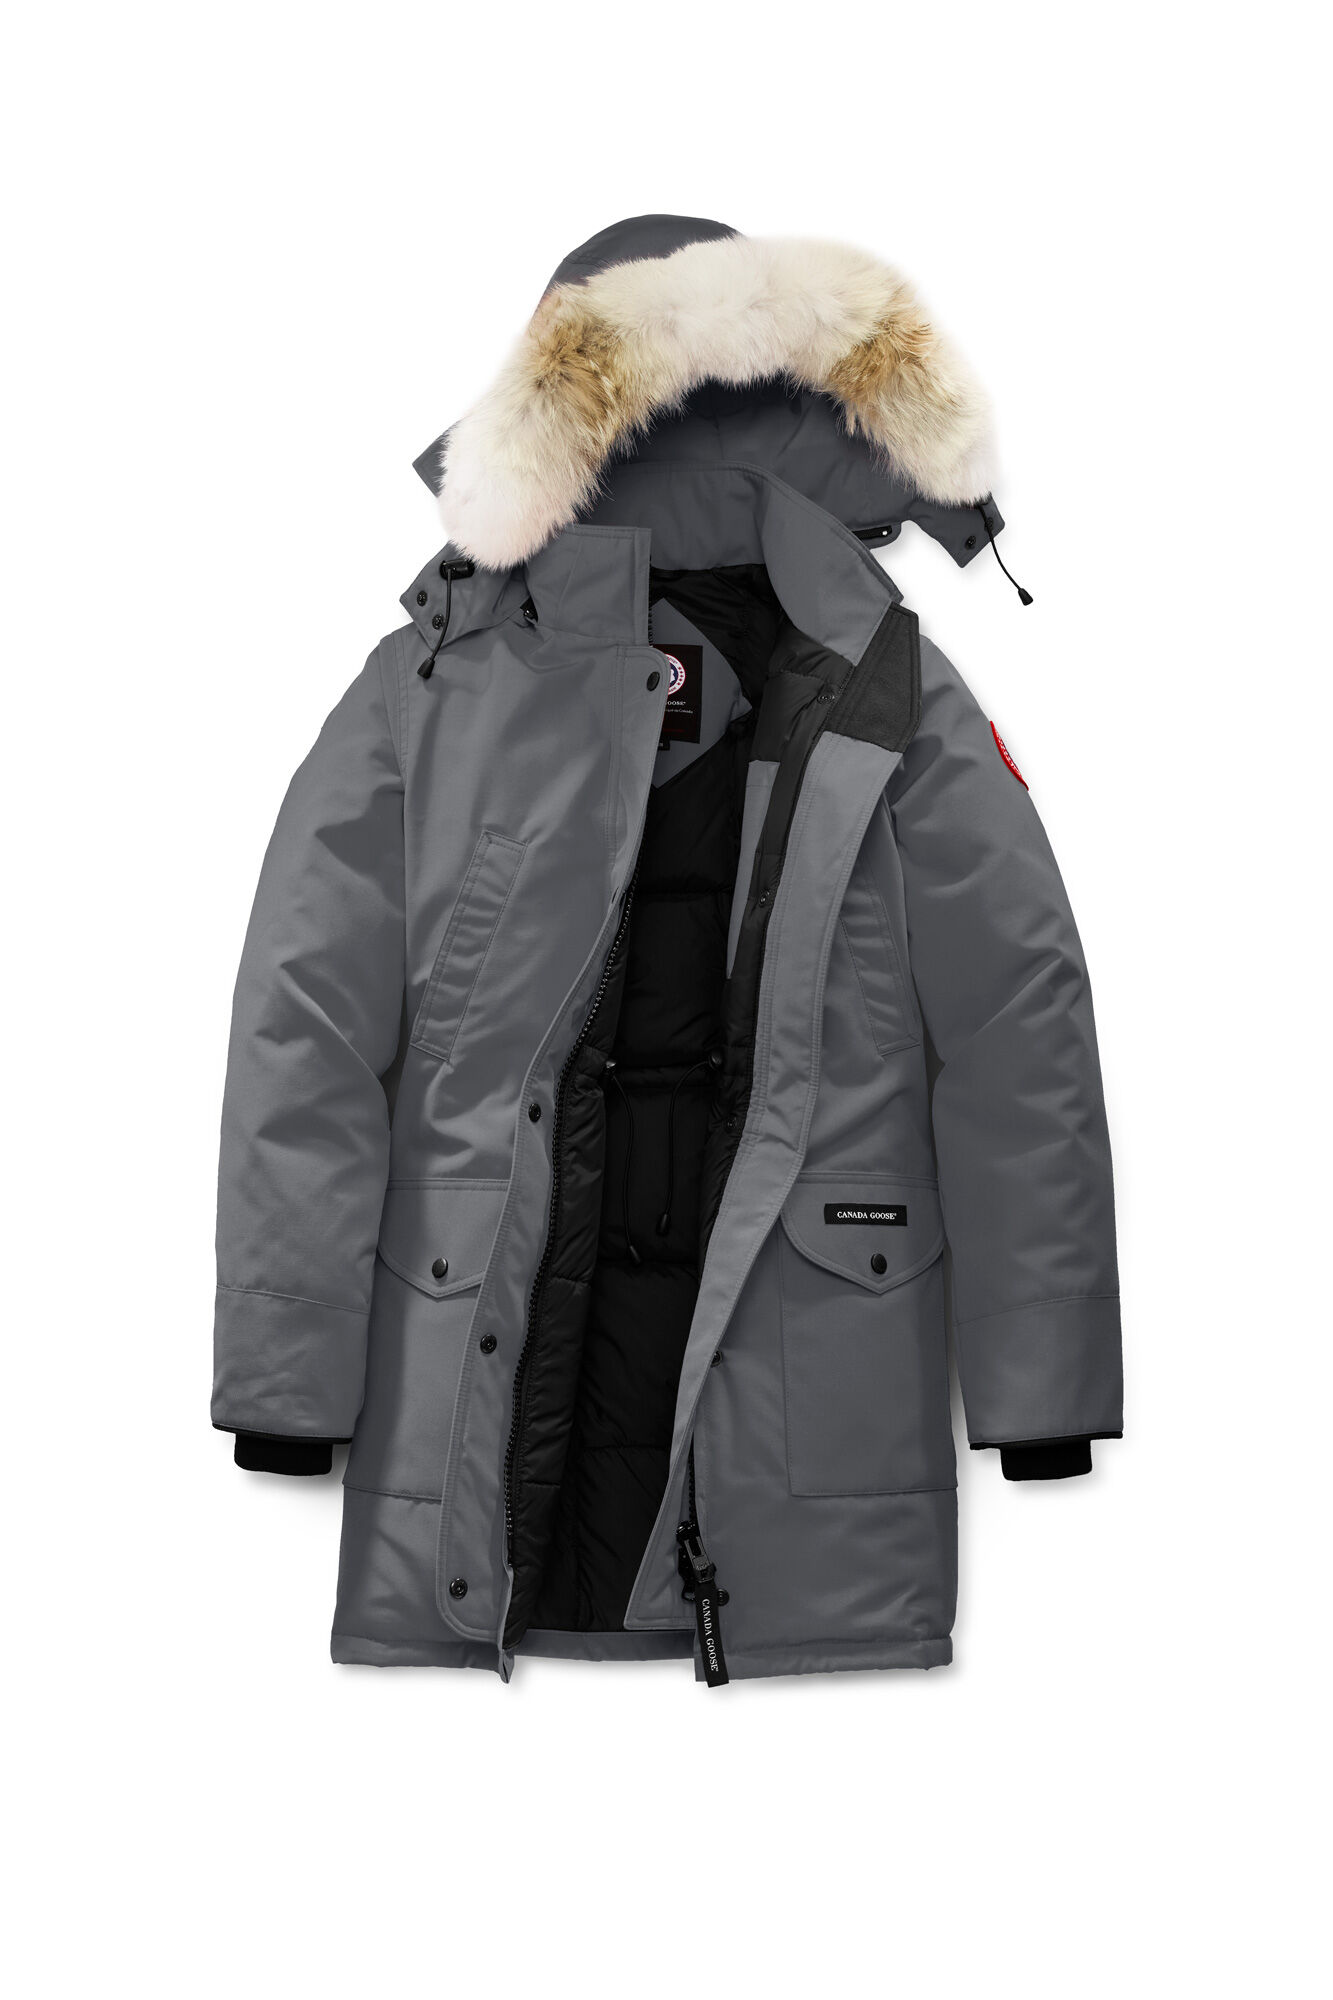 canada goose jacket washing machine